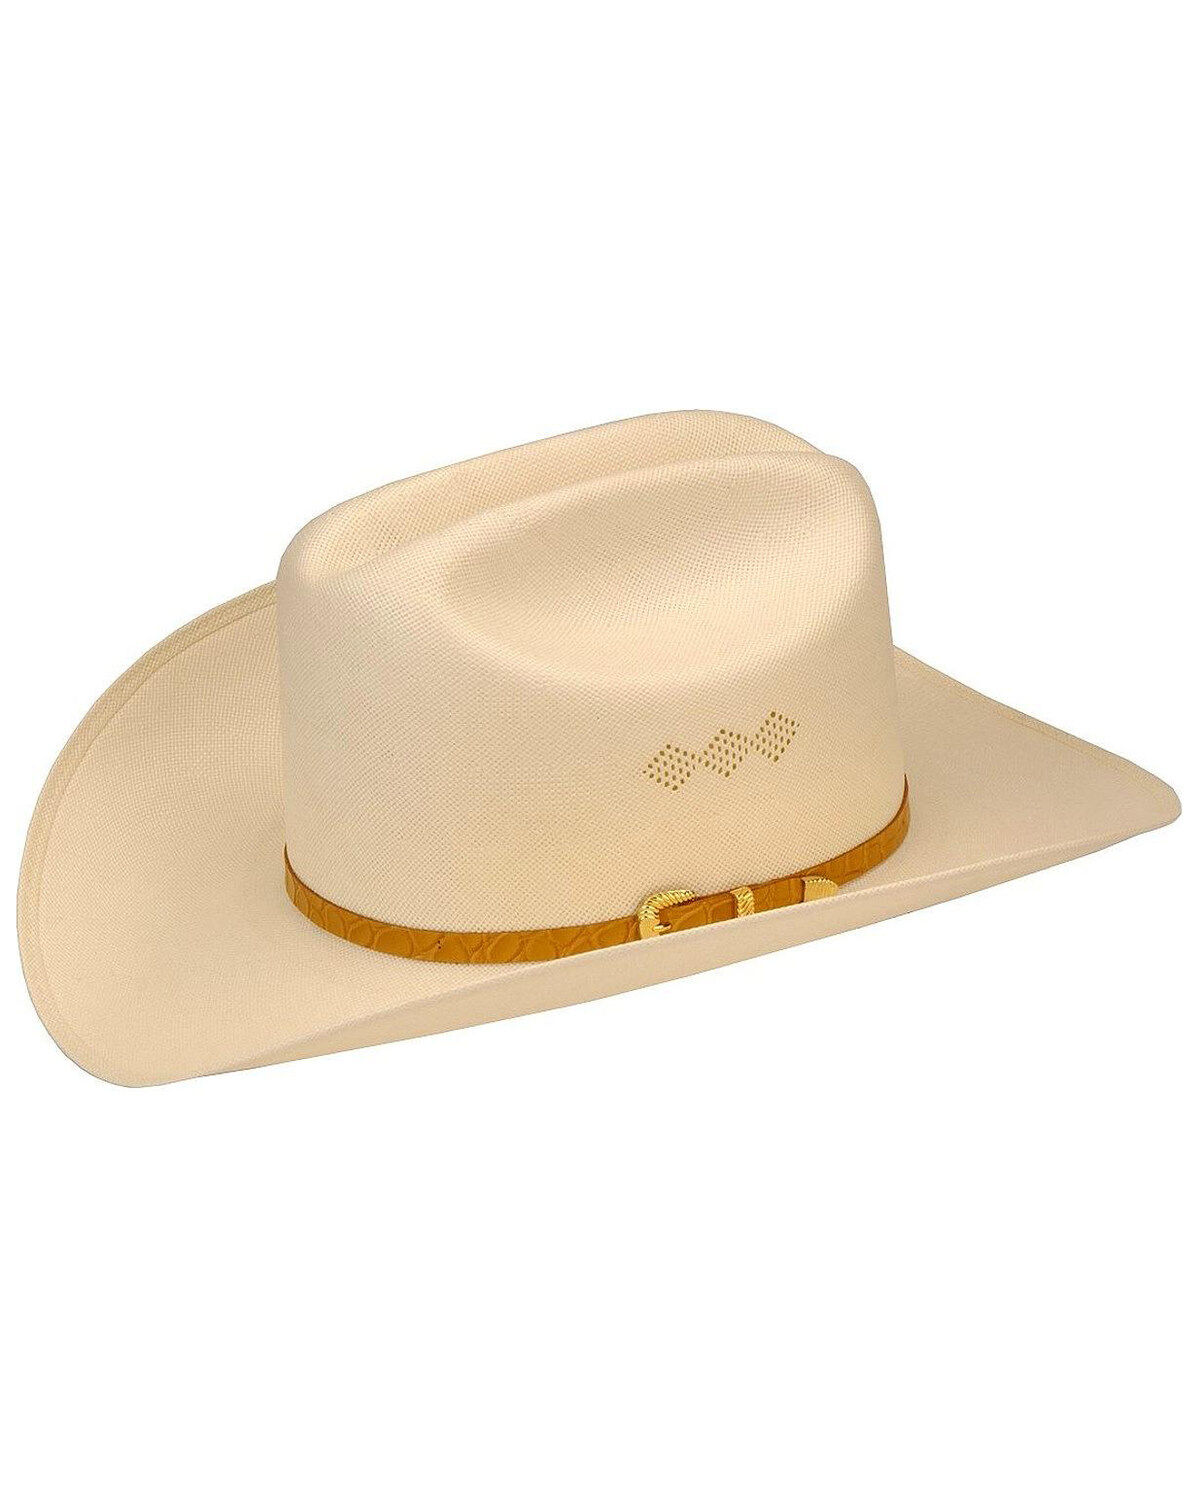 Men s Straw Western Hats 3342a96ee9b